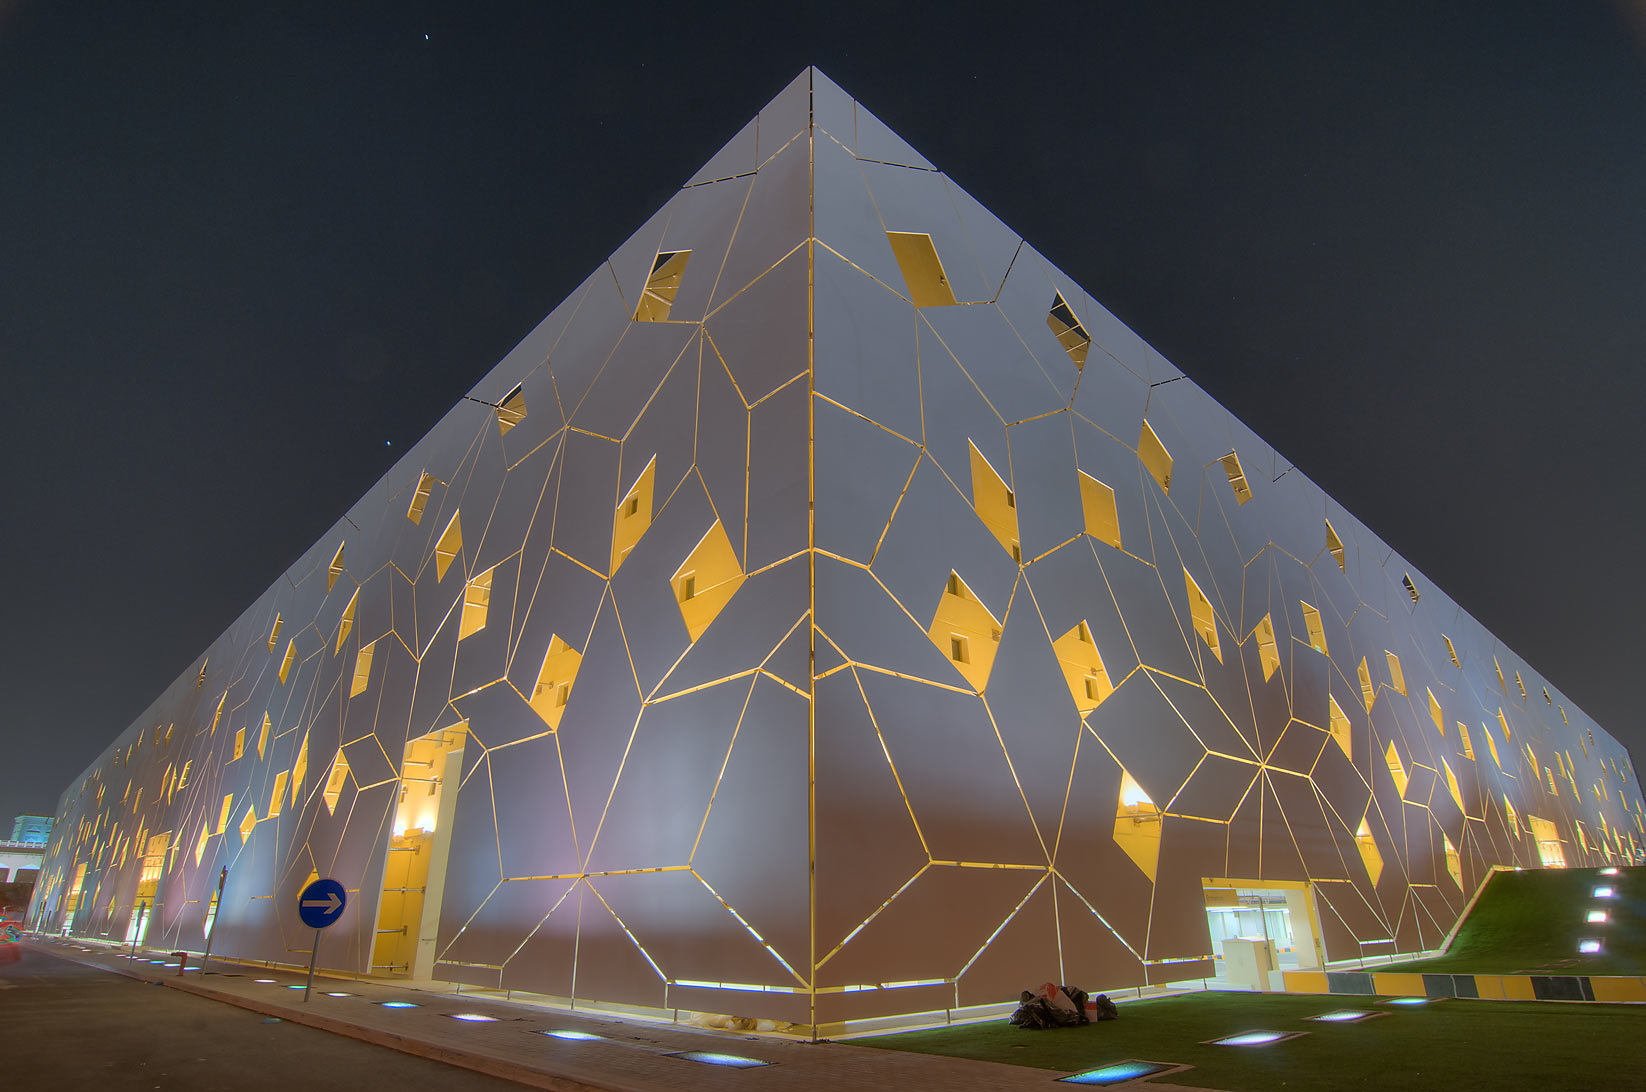 Liberal Arts and Science (LAS) building in Education City campus. Doha, Qatar